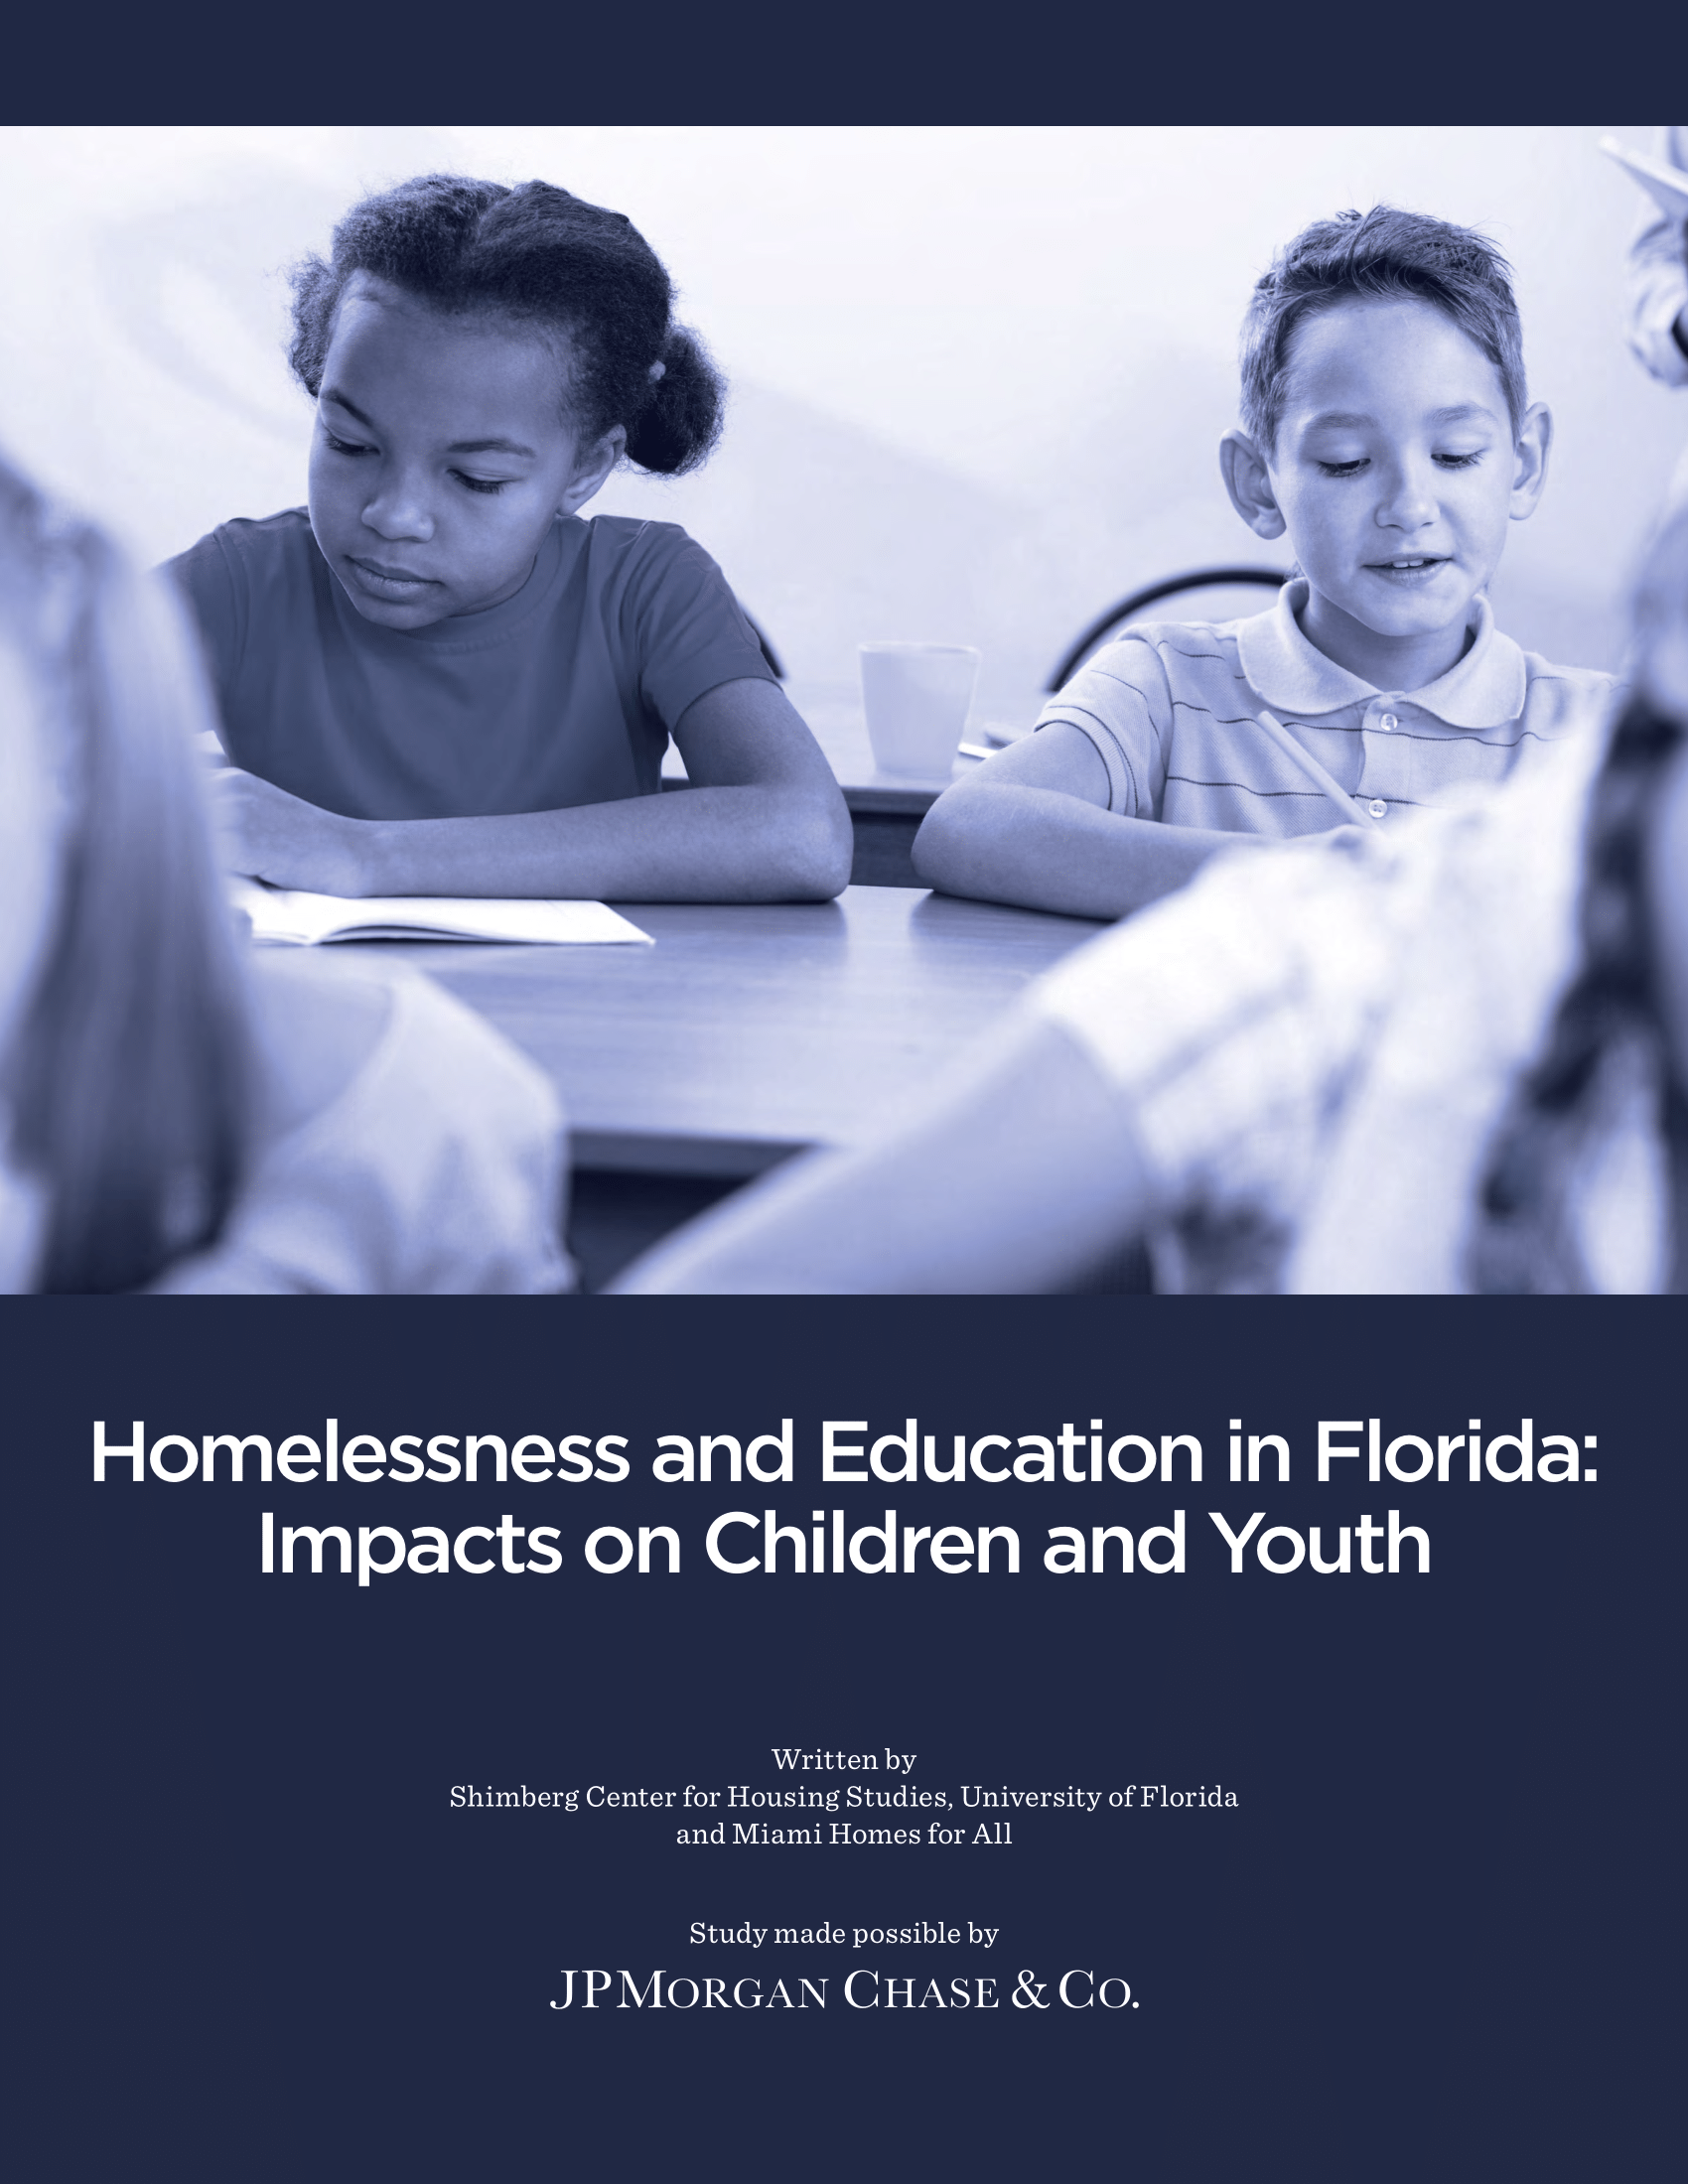 Homelessness and Education in Florida Impacts on Children and Youth - October 2017-01.png